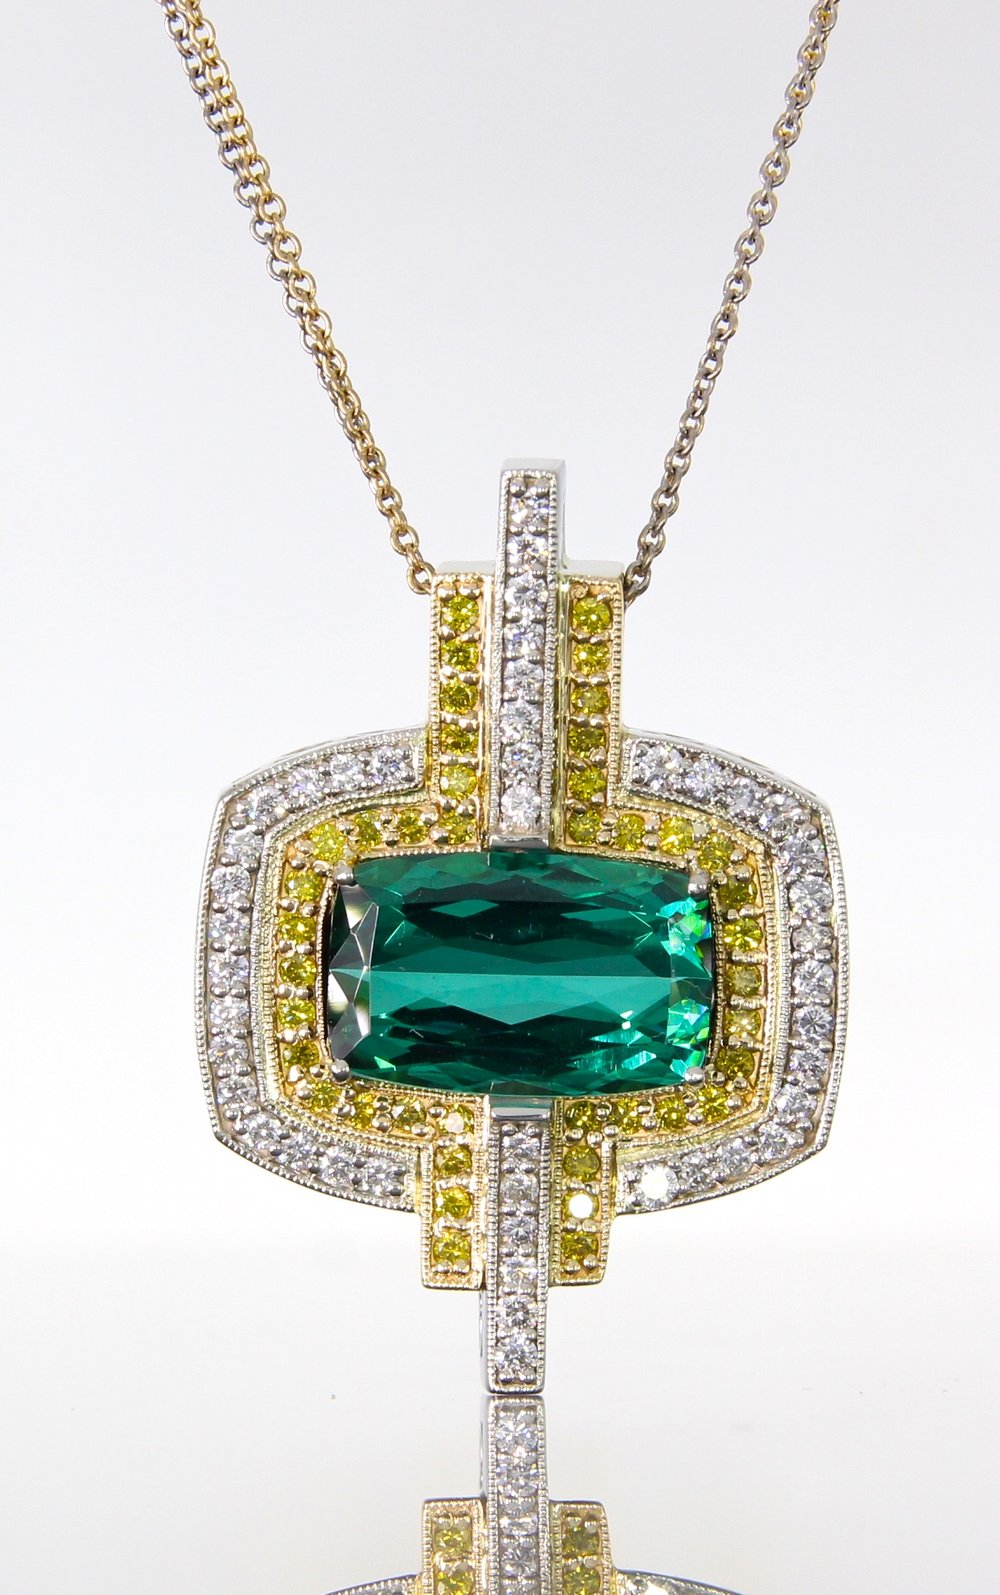 unique-custom-tourmaline-stone-yellow-white-diamonds-art-deco-style-pendant-craft-revival-jewelry-store-grand-rapids